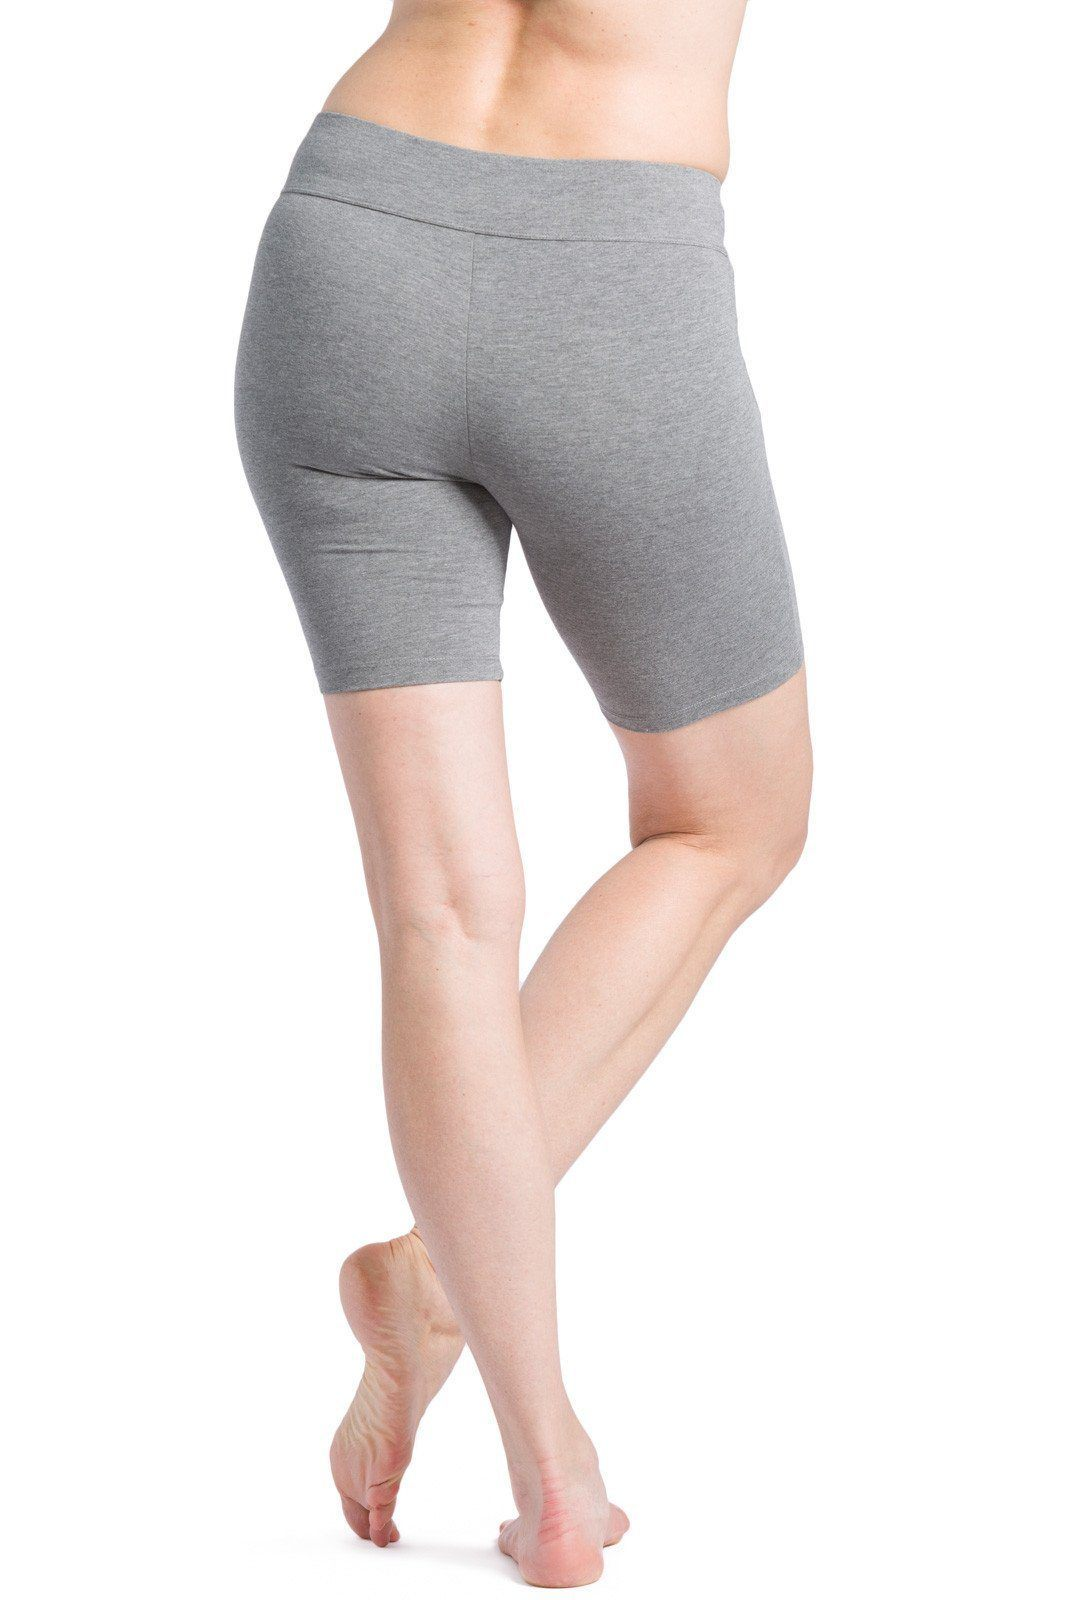 Womens Ecofabric Workout Yoga Short; Mid Thigh